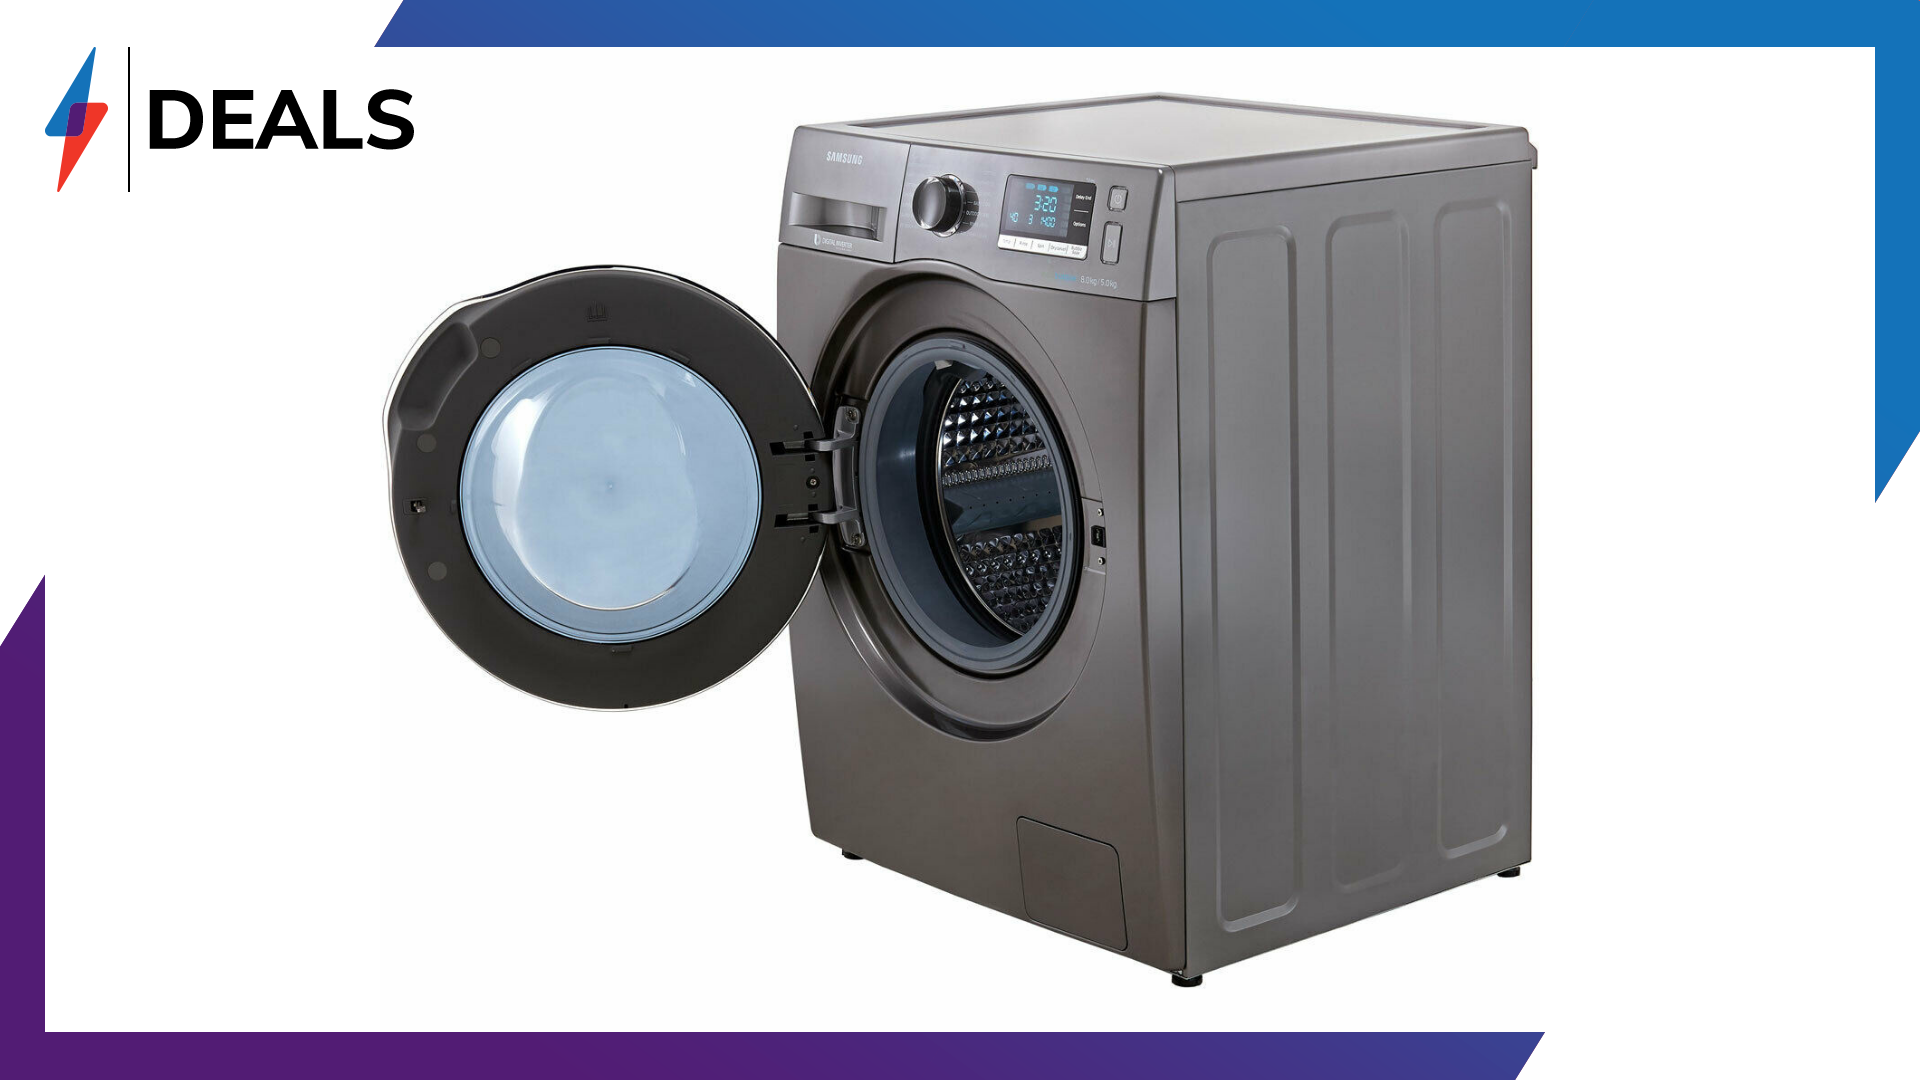 Get free installation and recycling with this home appliance offer